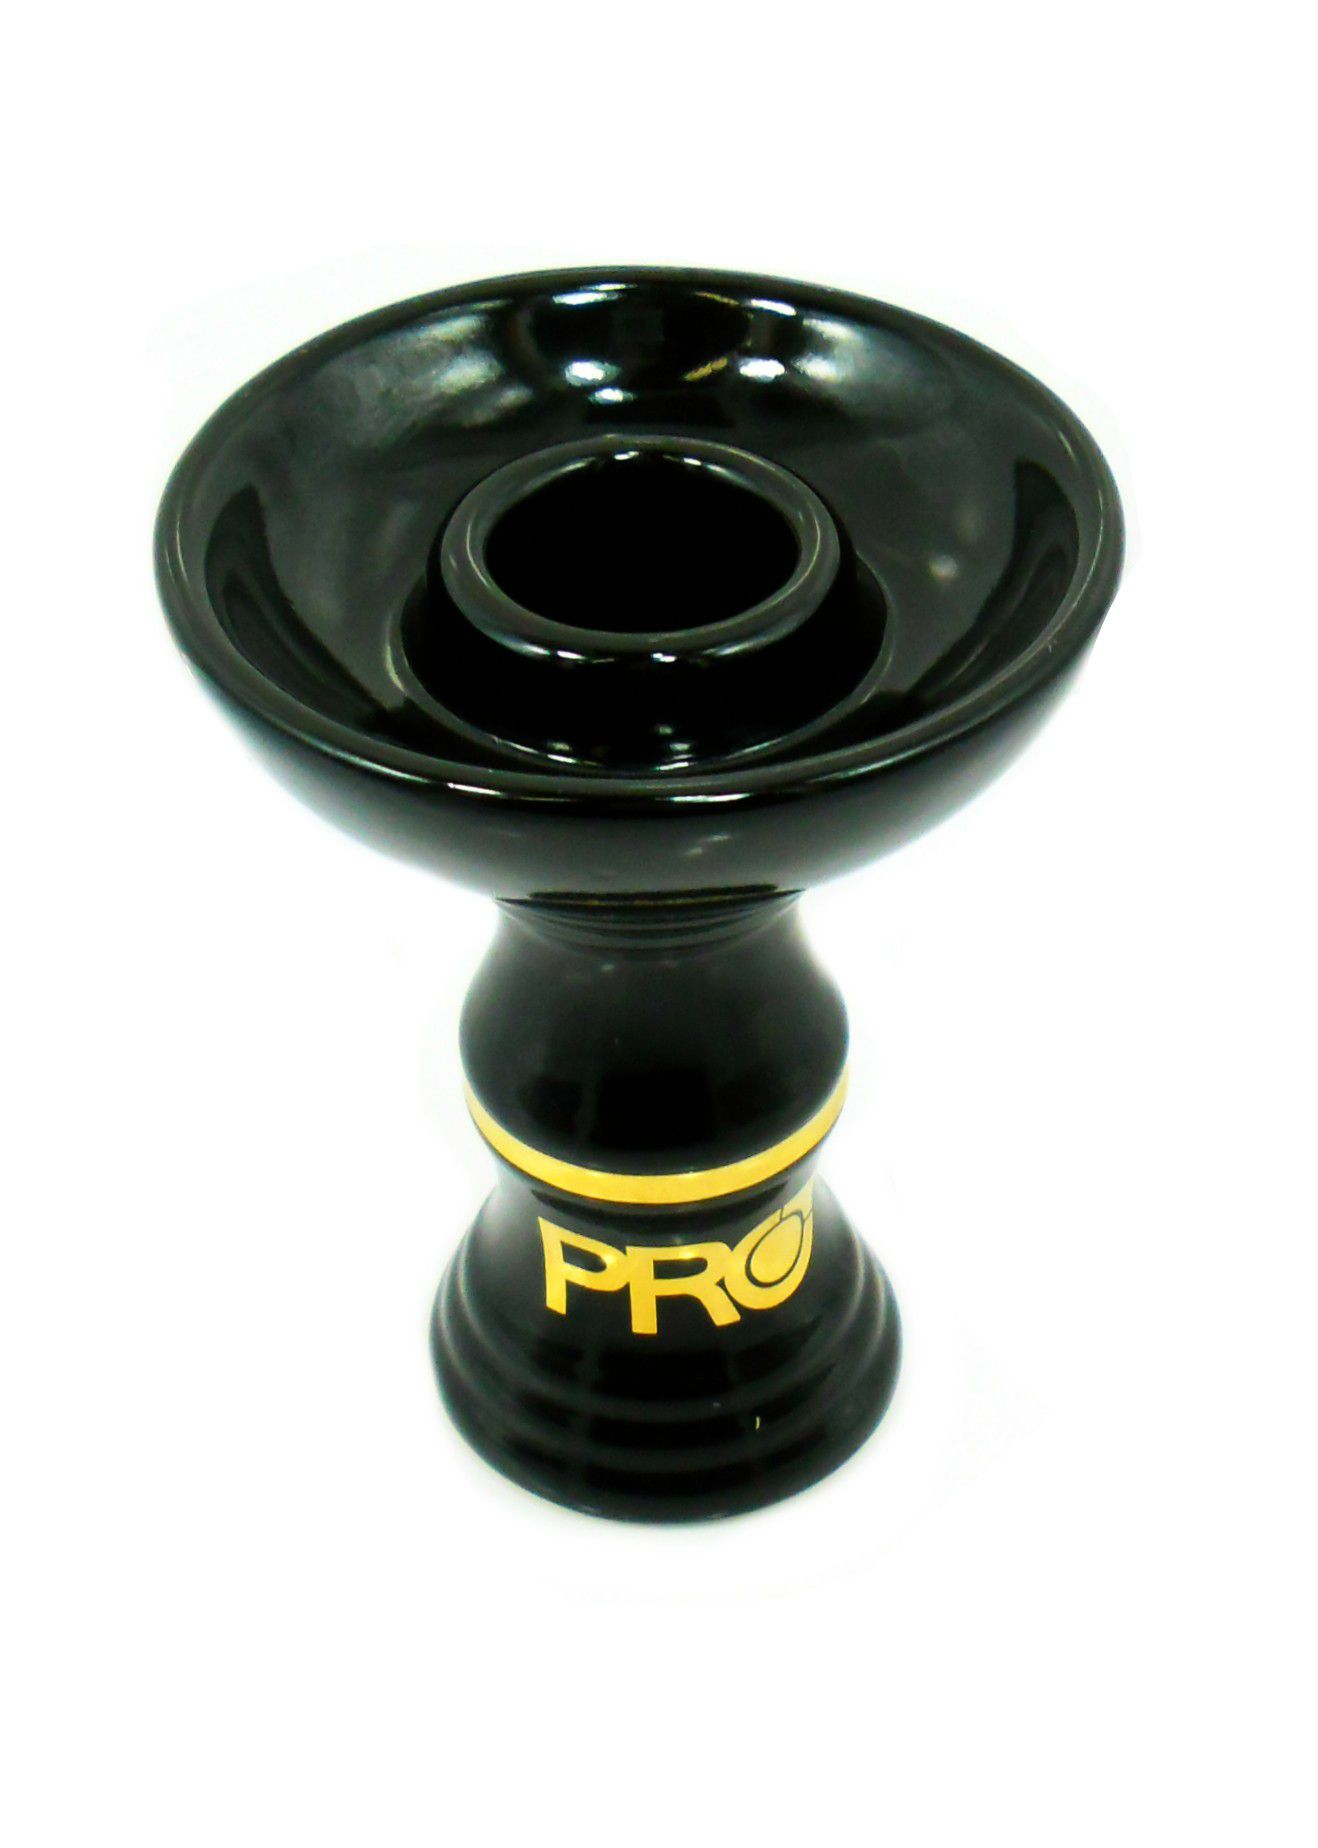 Fornilho/Rosh para narguile tipo FUNIL(Phunnel) Pro Hookah Intense GOLD, cerâmica refratária, 10cm.